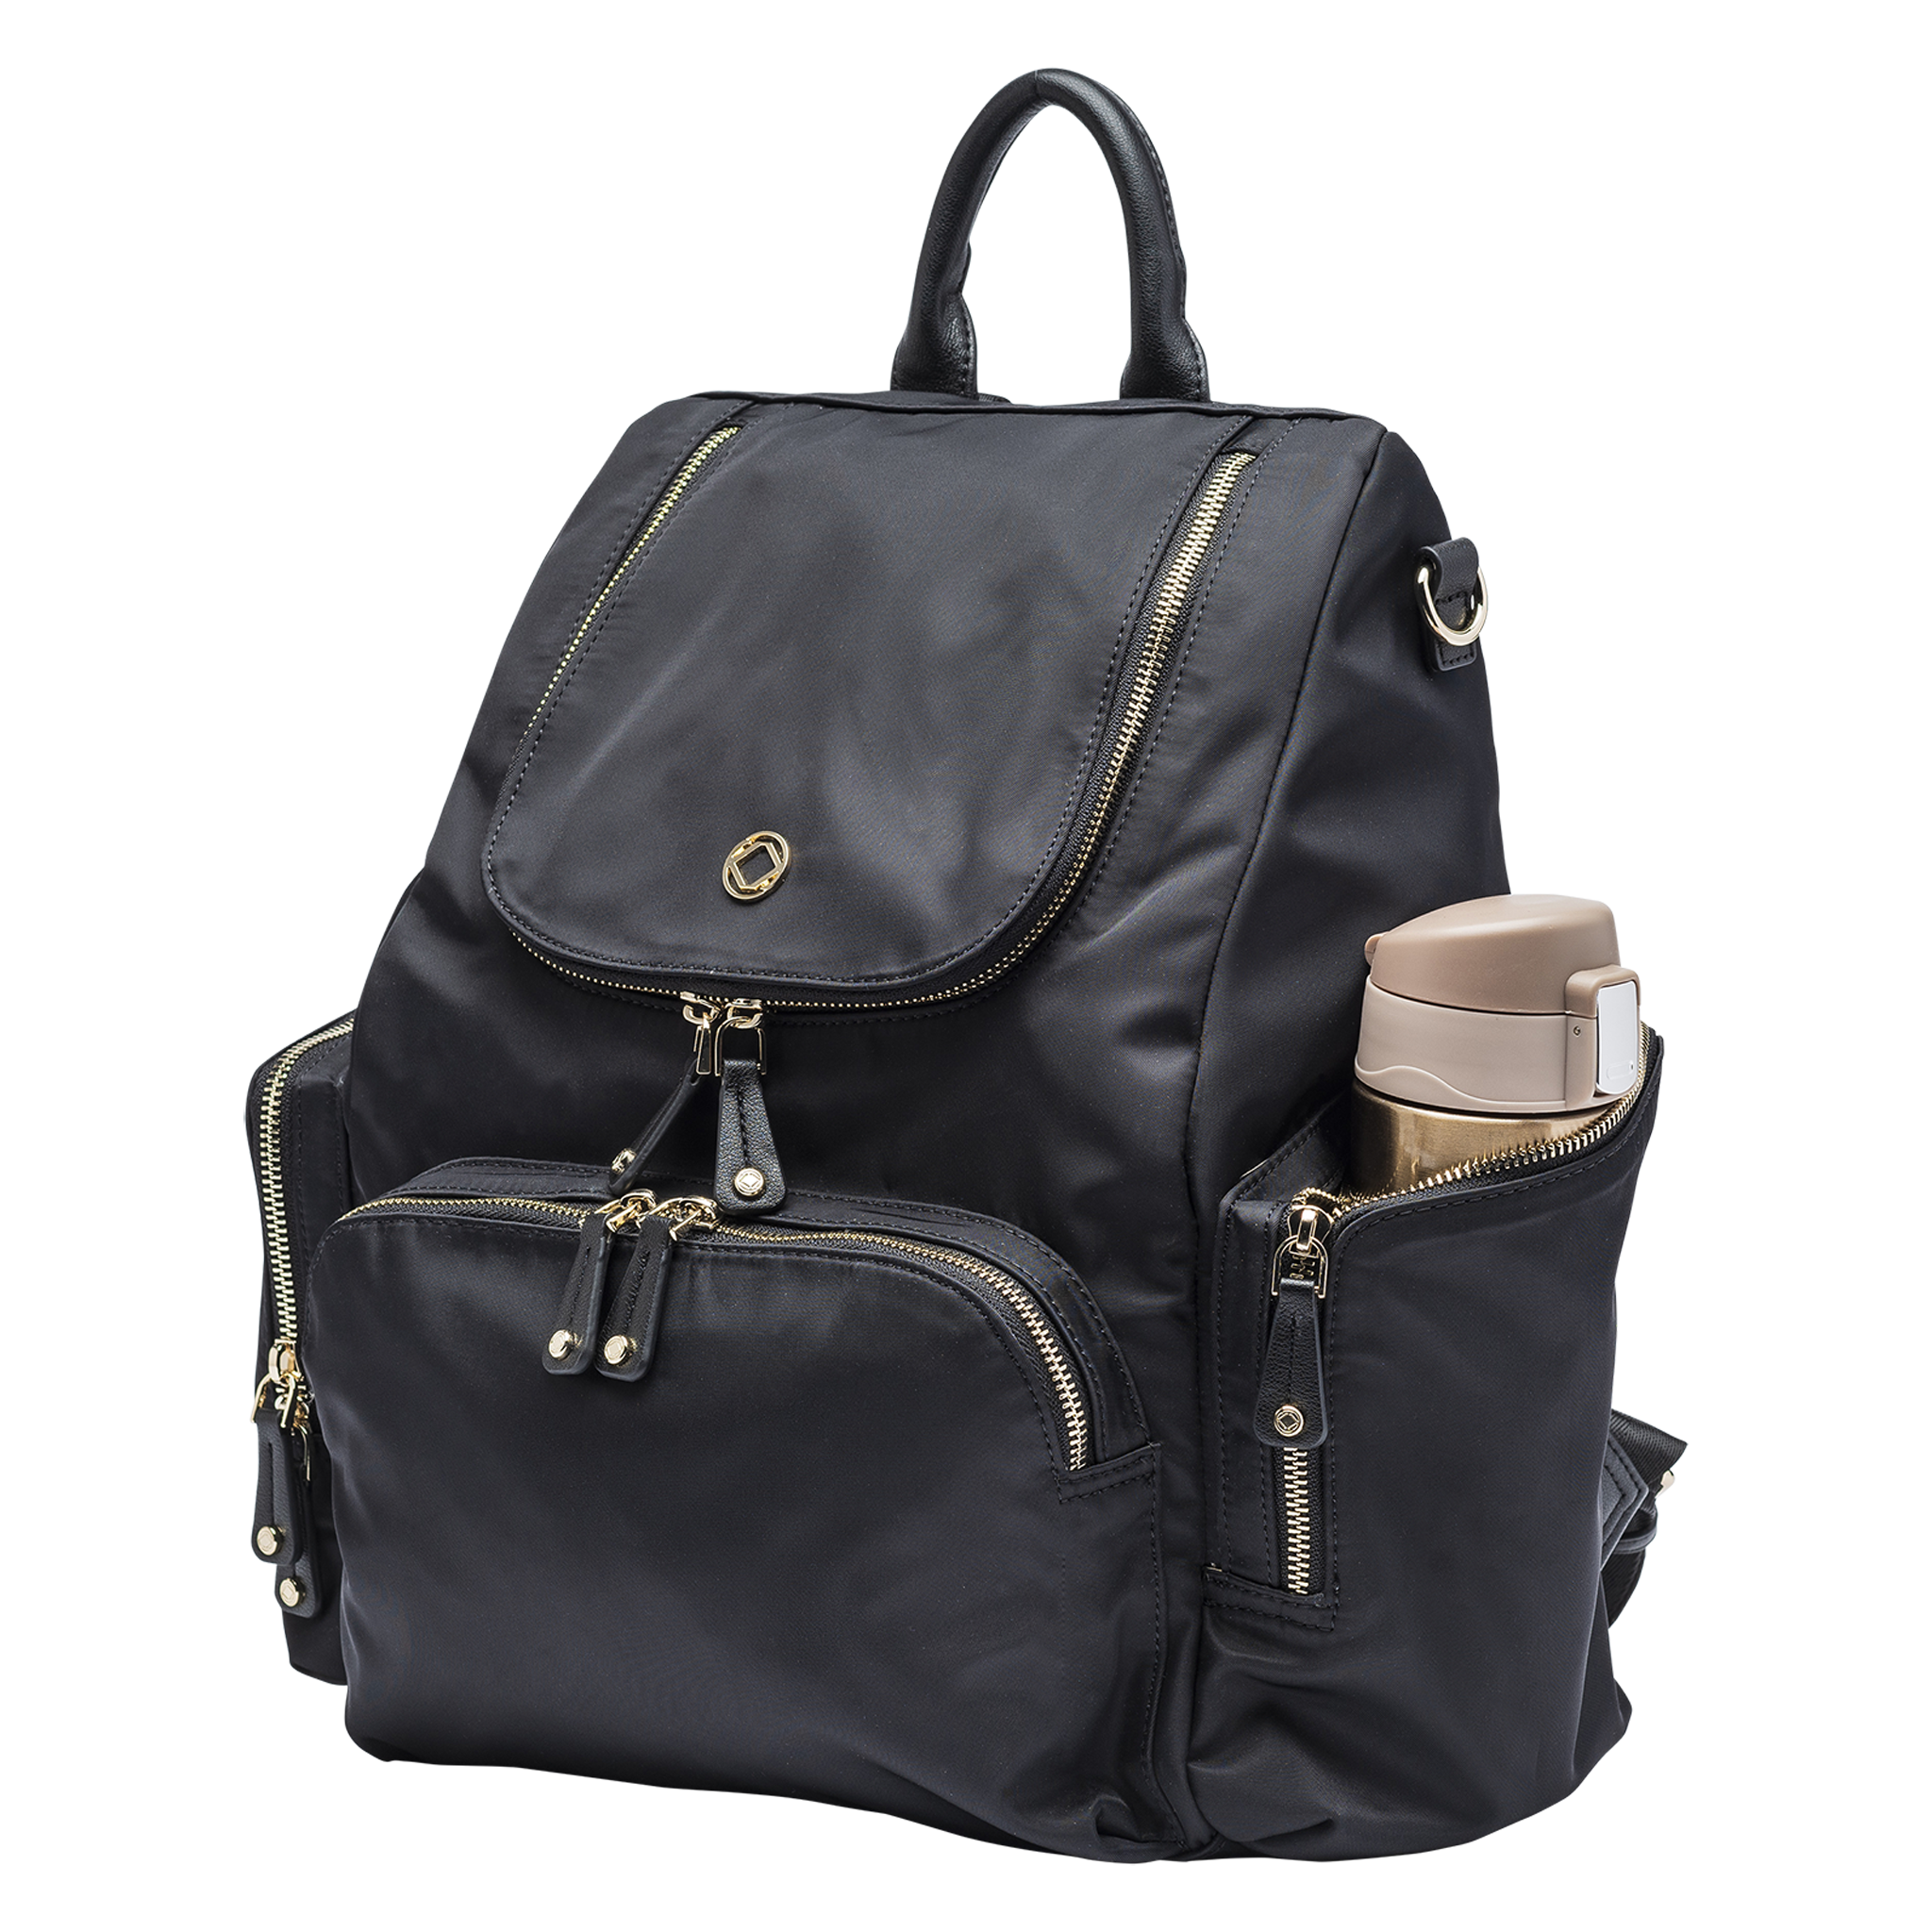 Black Nylon Backpack with flask in side pocket